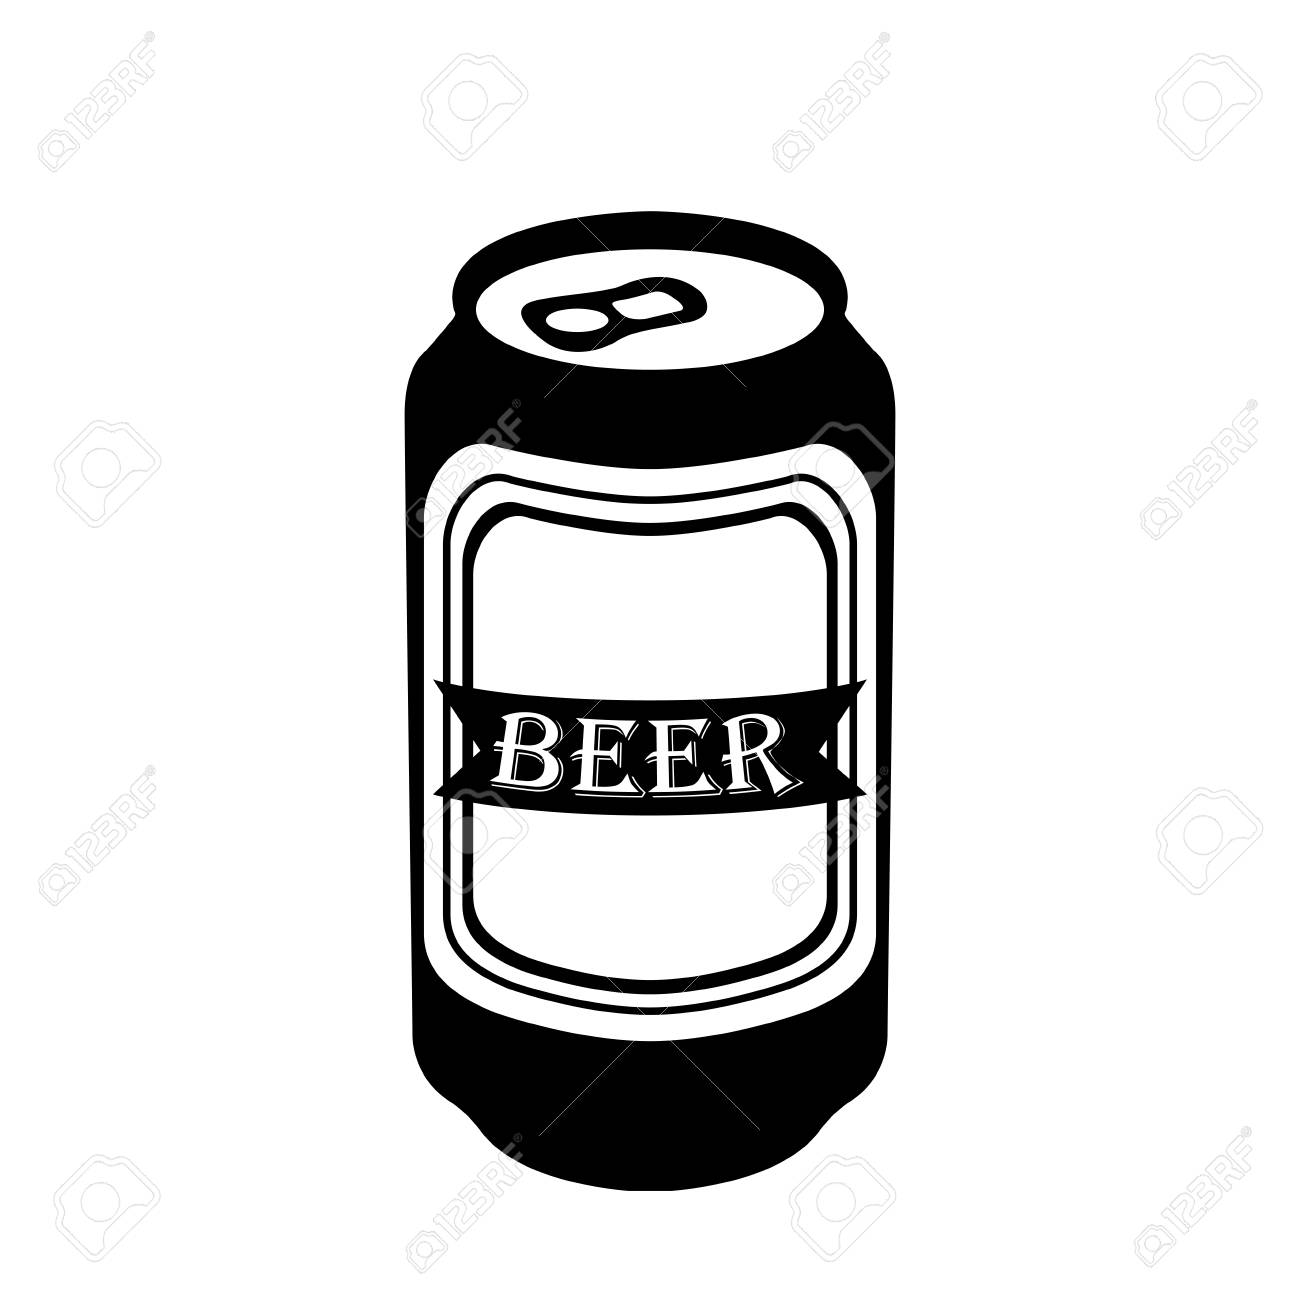 isolated silhouette of a beer can royalty free cliparts vectors rh 123rf com blank beer can vector beer can outline vector